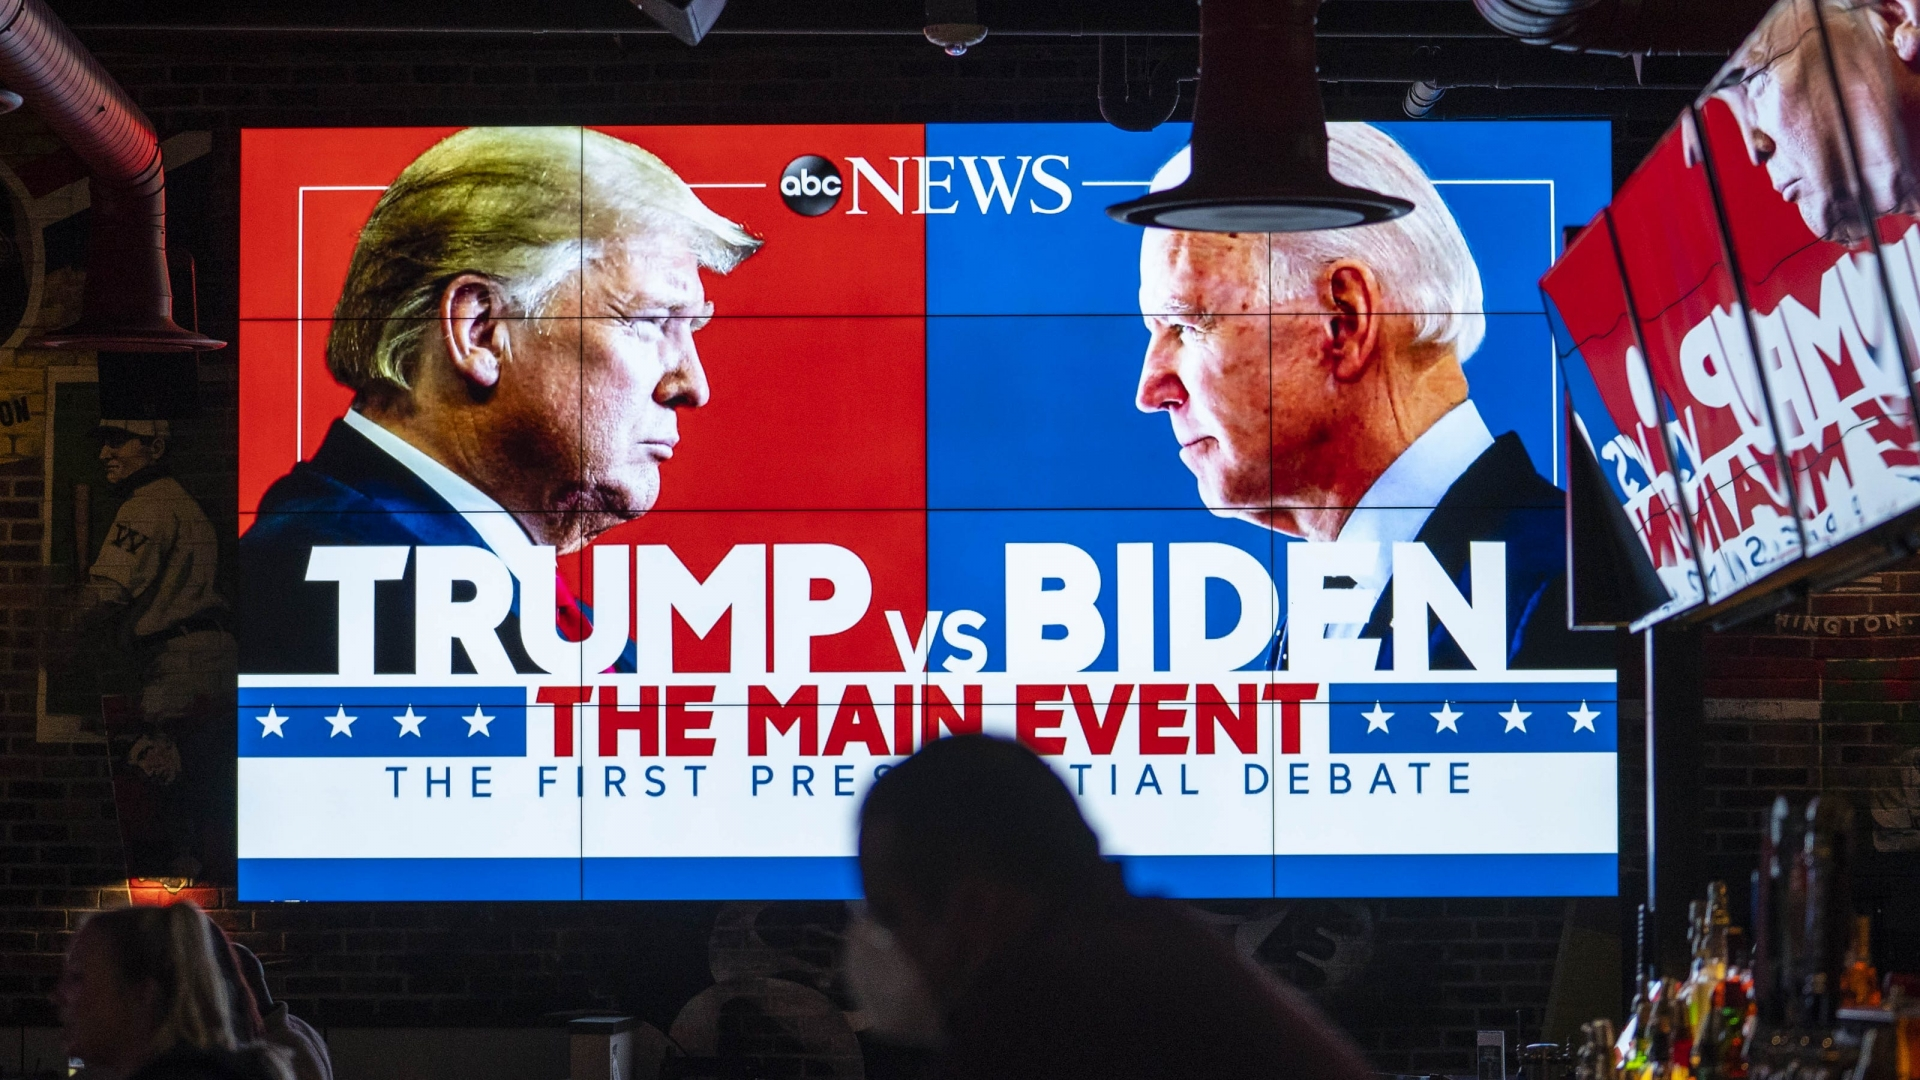 world breaking news today october 5 biden up 14 points on trump following chaotic debate